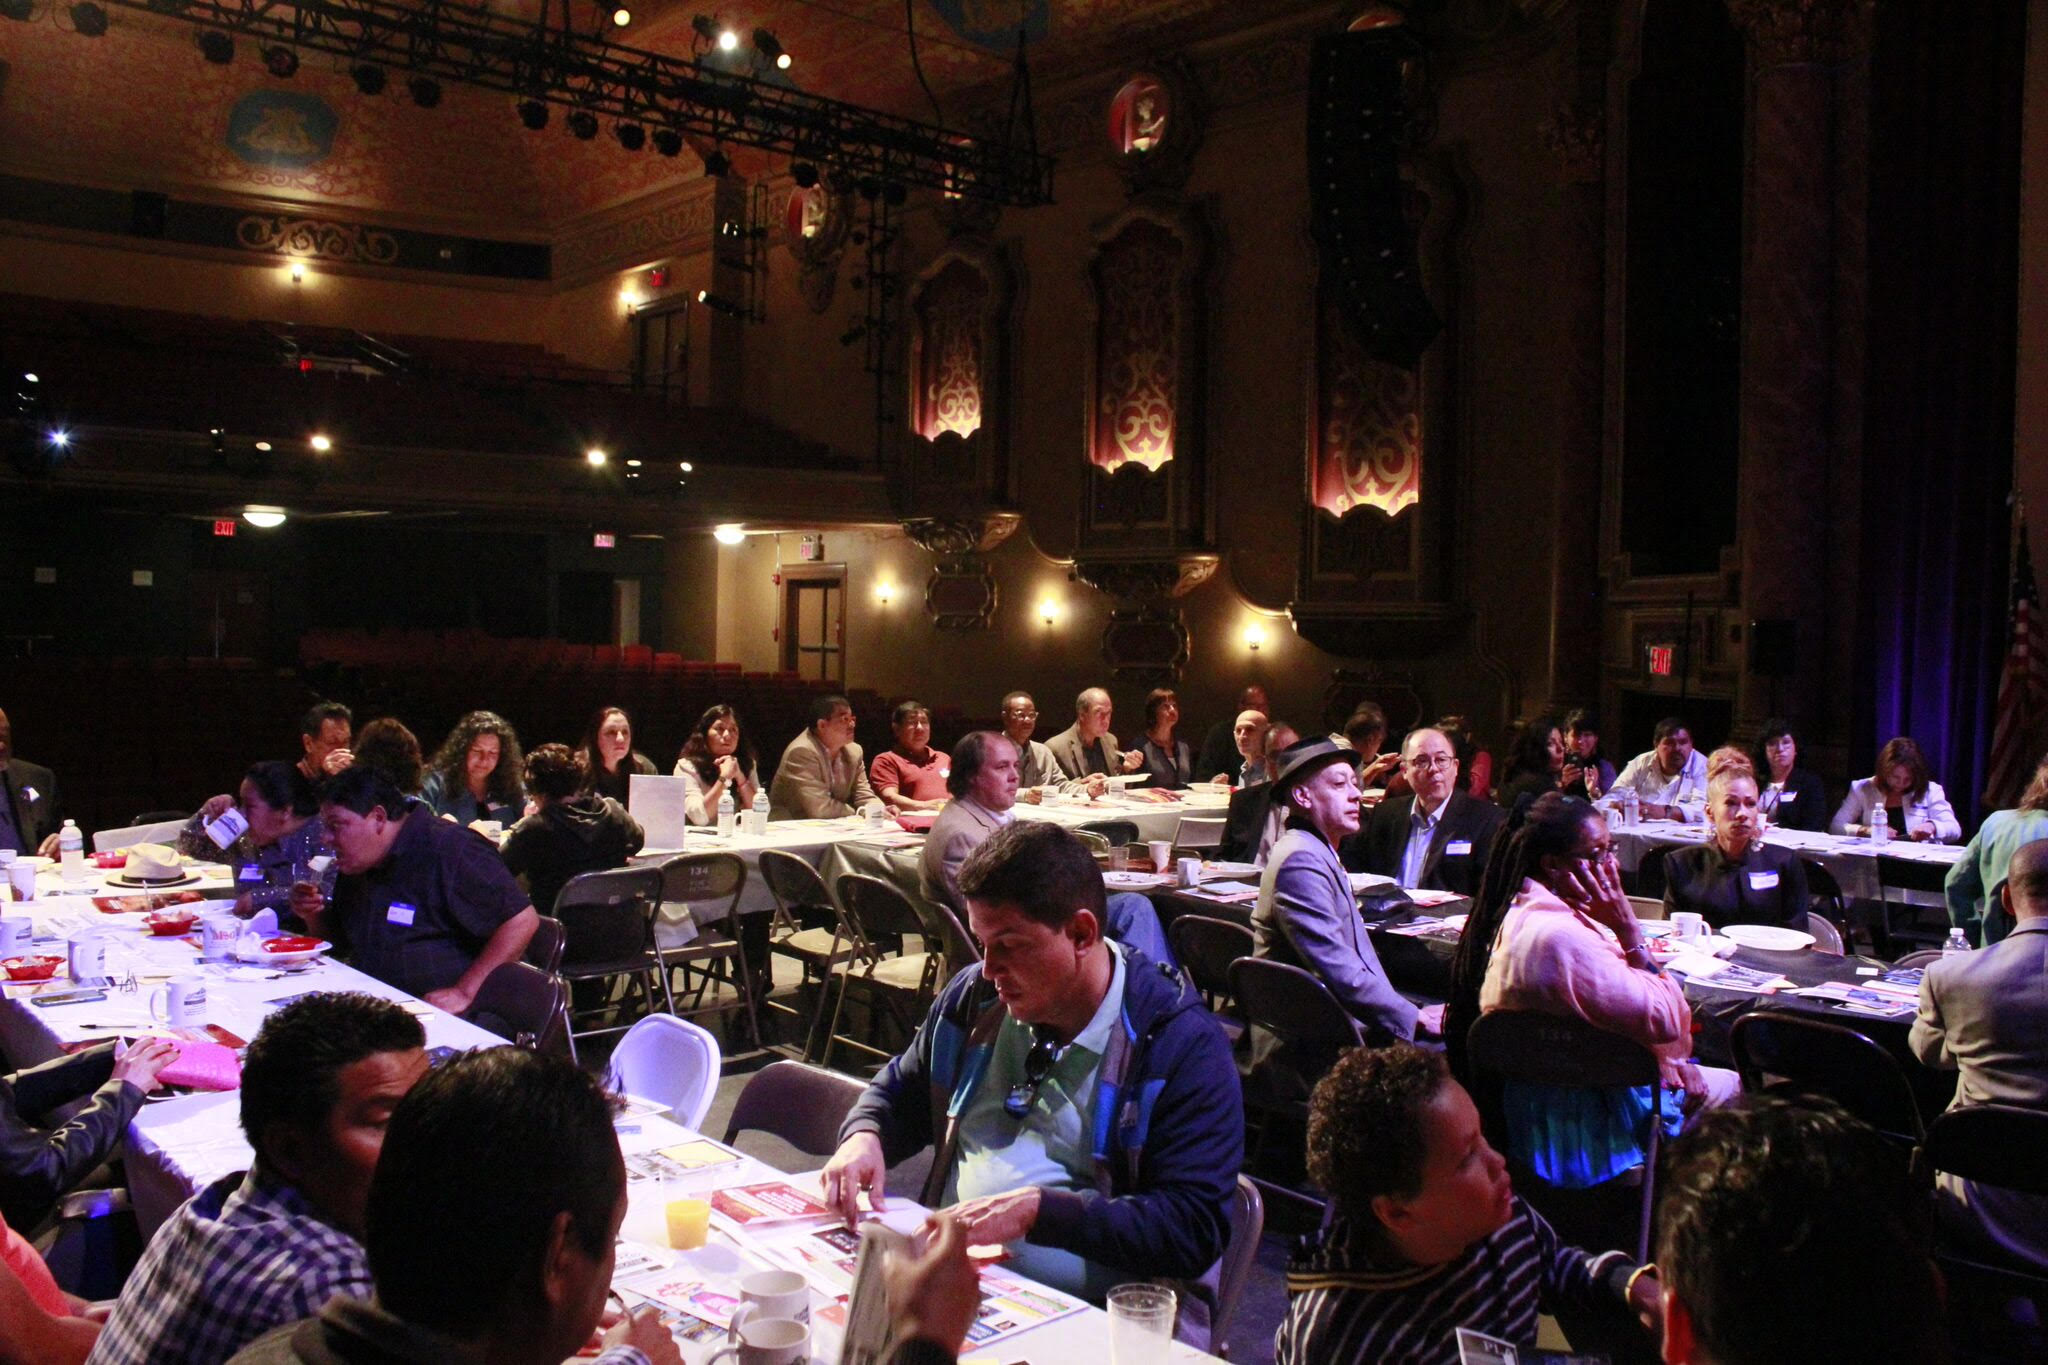 Latino communities meeting at the Paramount Theatre, Peekskill. Photo by Fred Romer